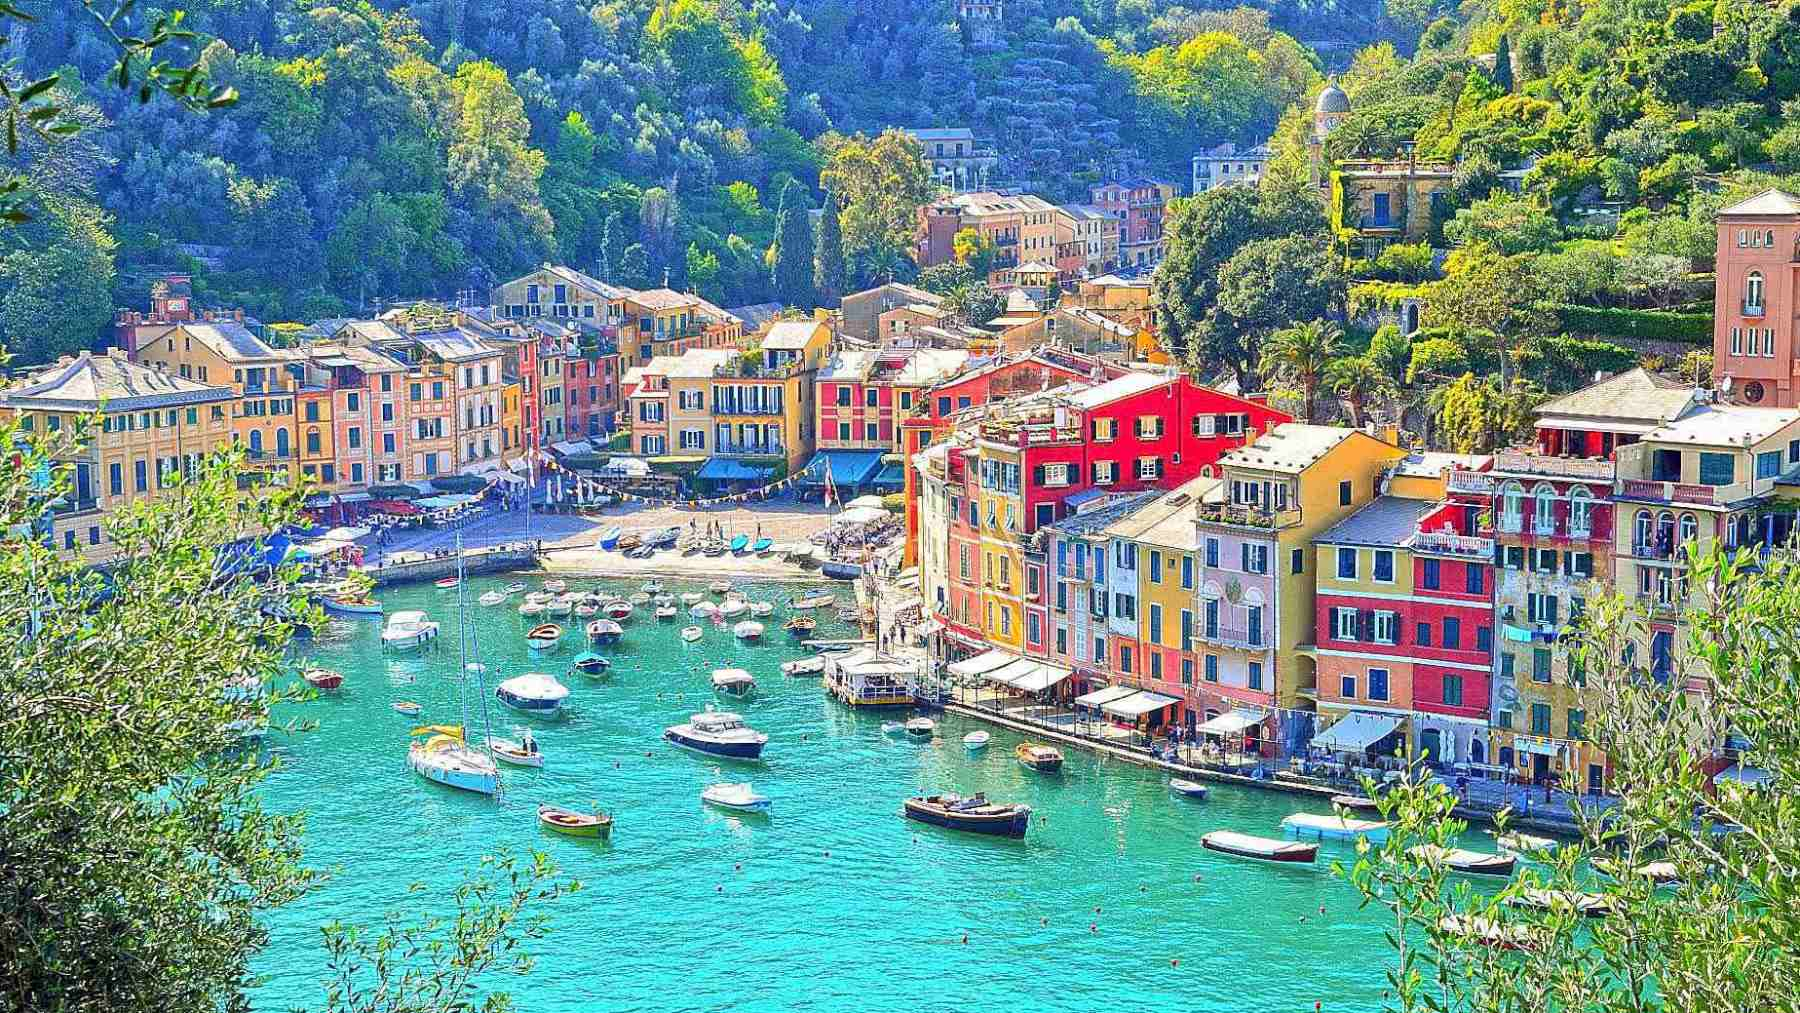 How to visit Portofino